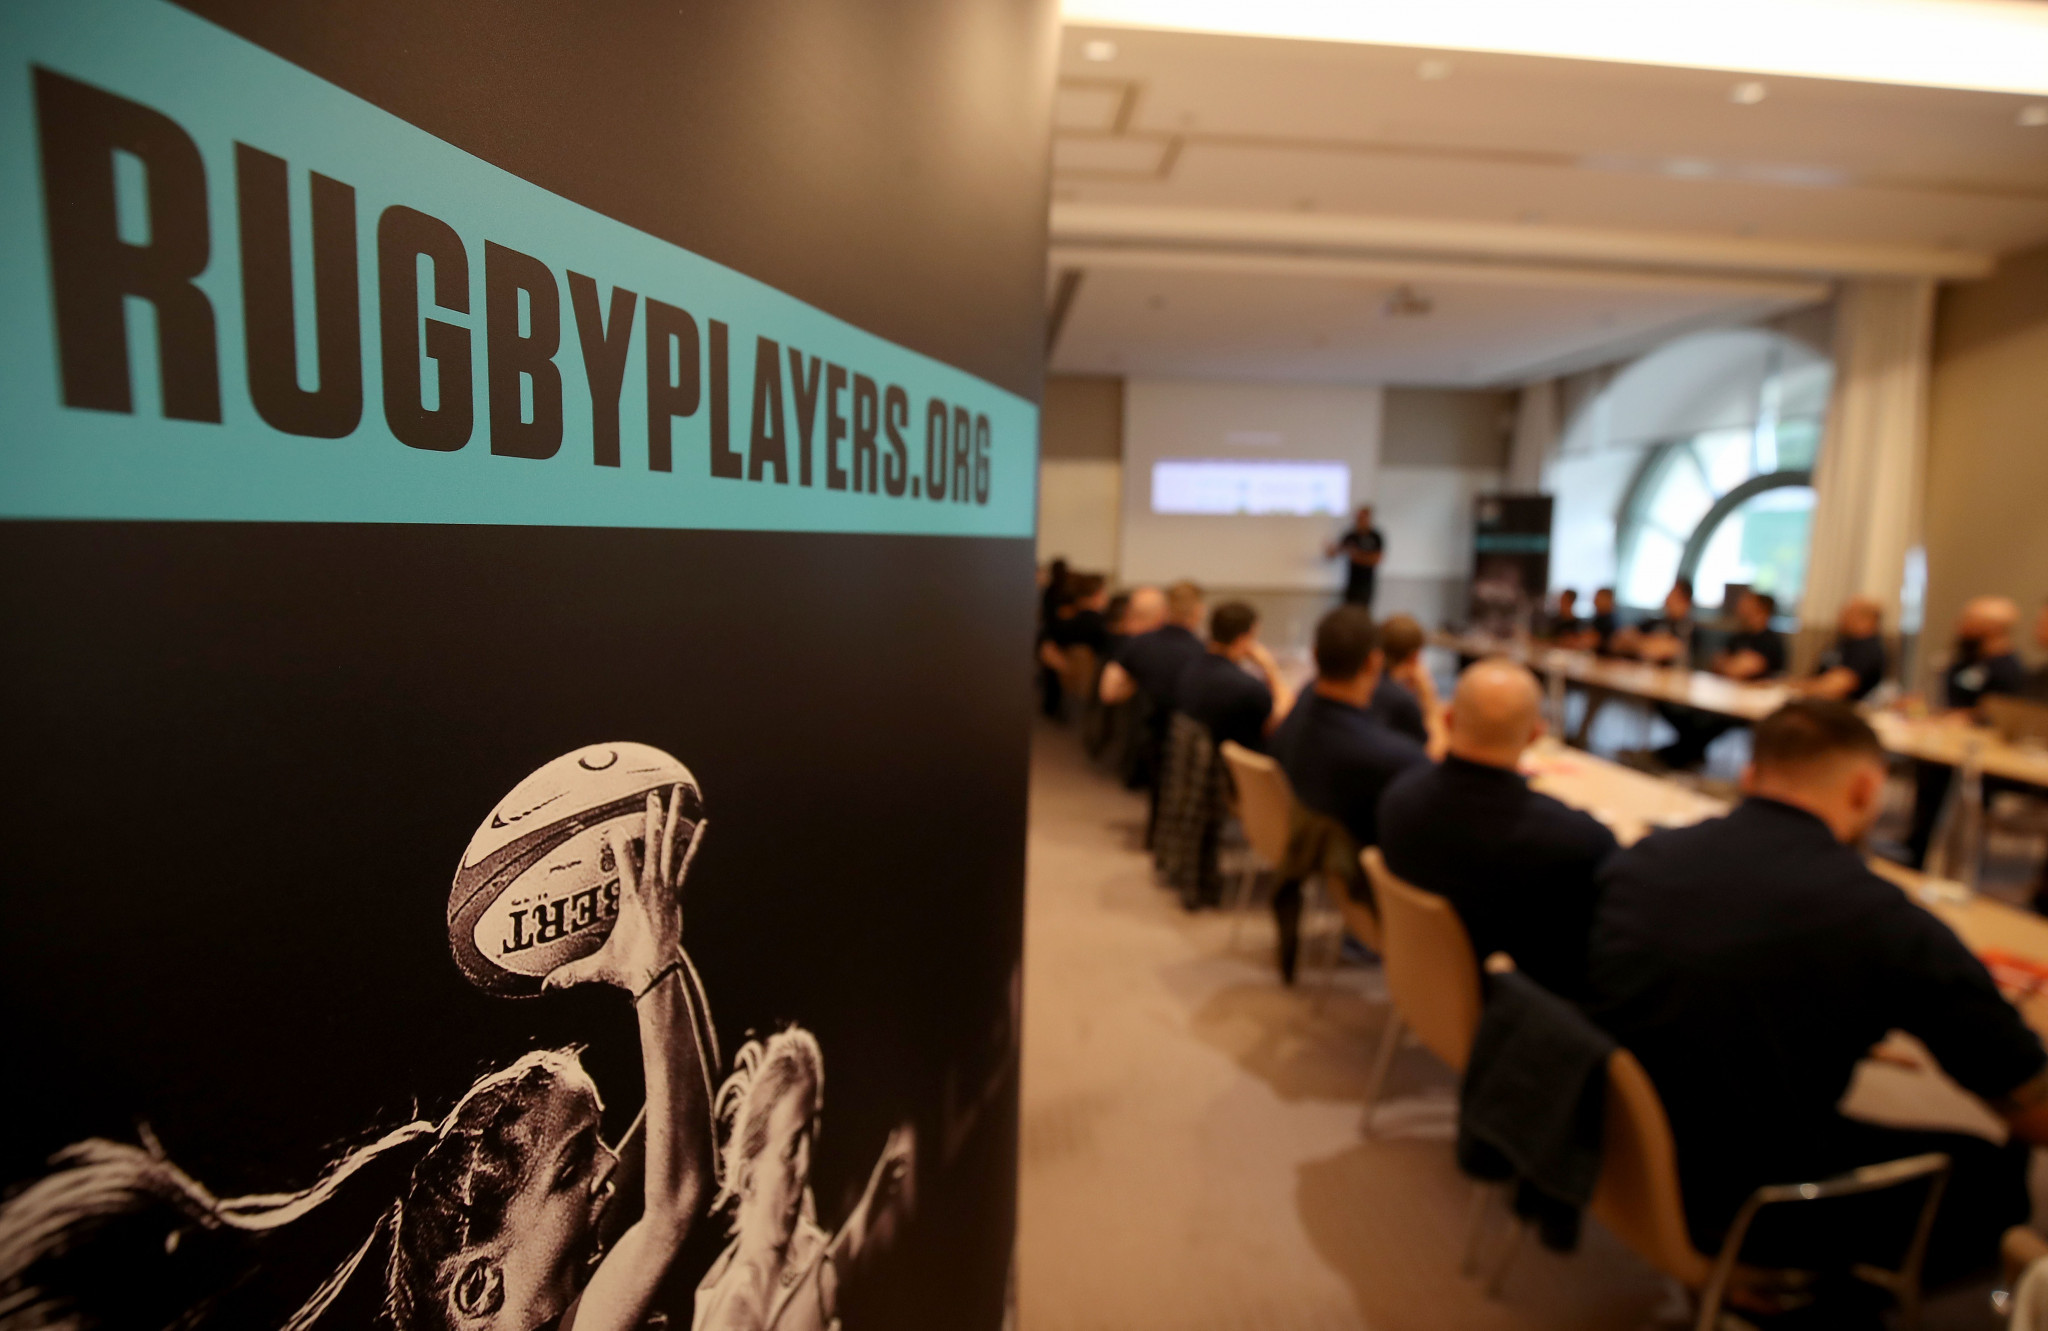 Members of the International Rugby Players Council have voiced serious concerns over safety issues regarding World Rugby's plans for a new global competition format ©INPHO Photography